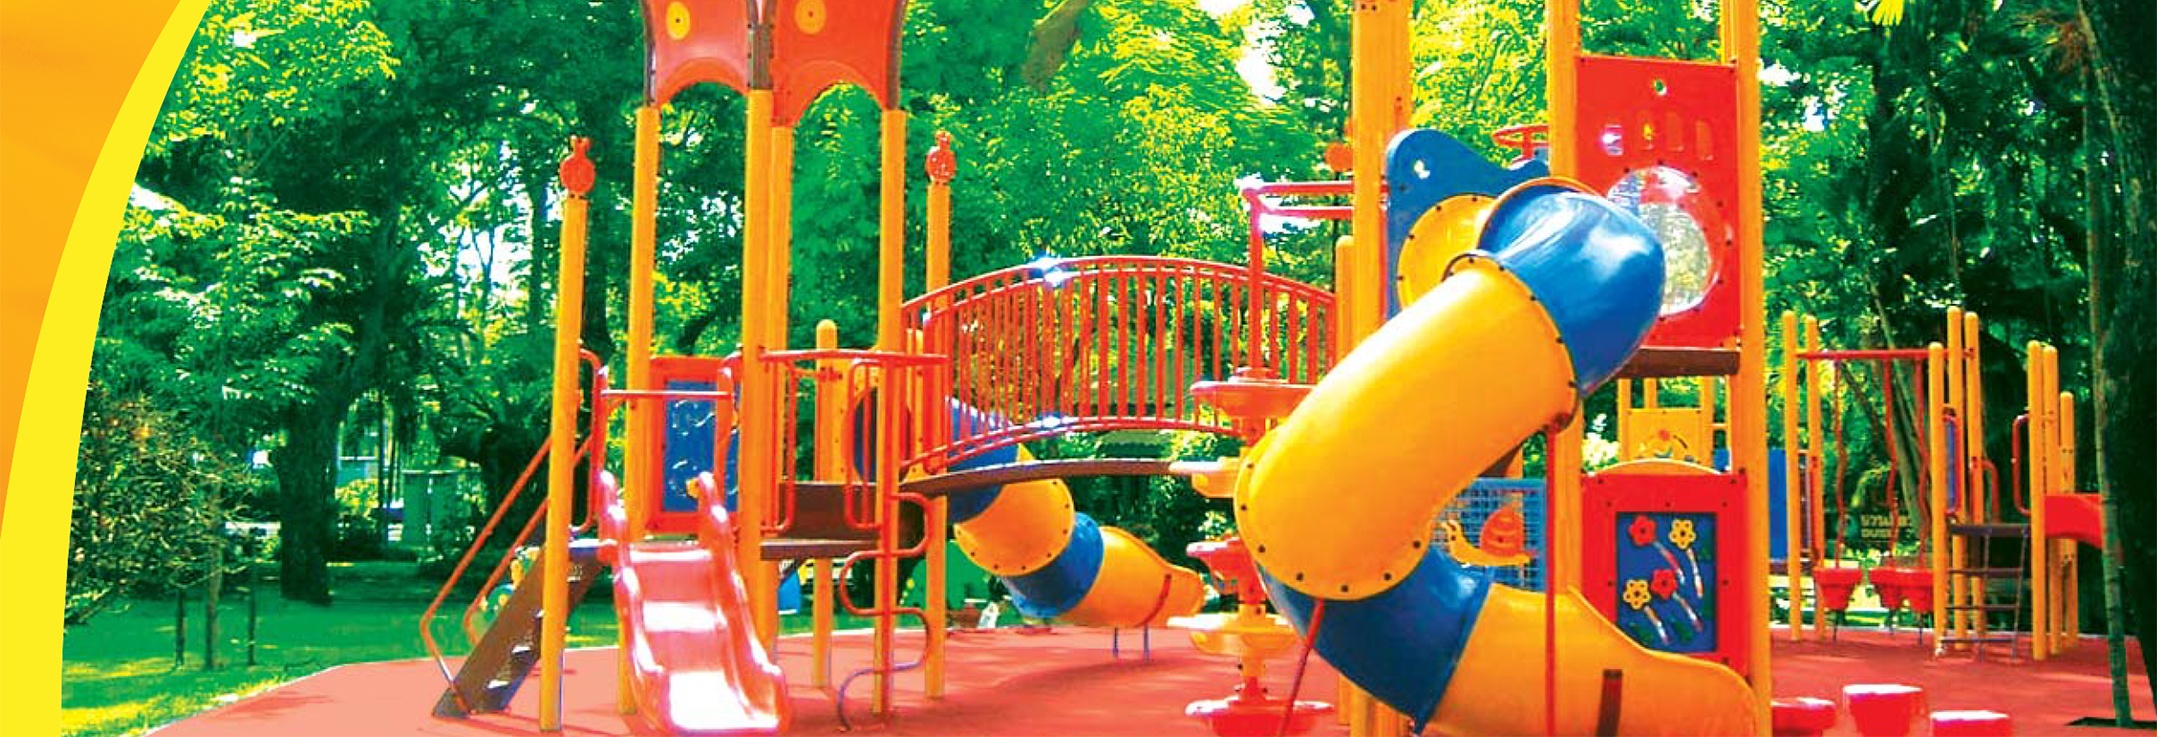 Childres Play Equipment - 4